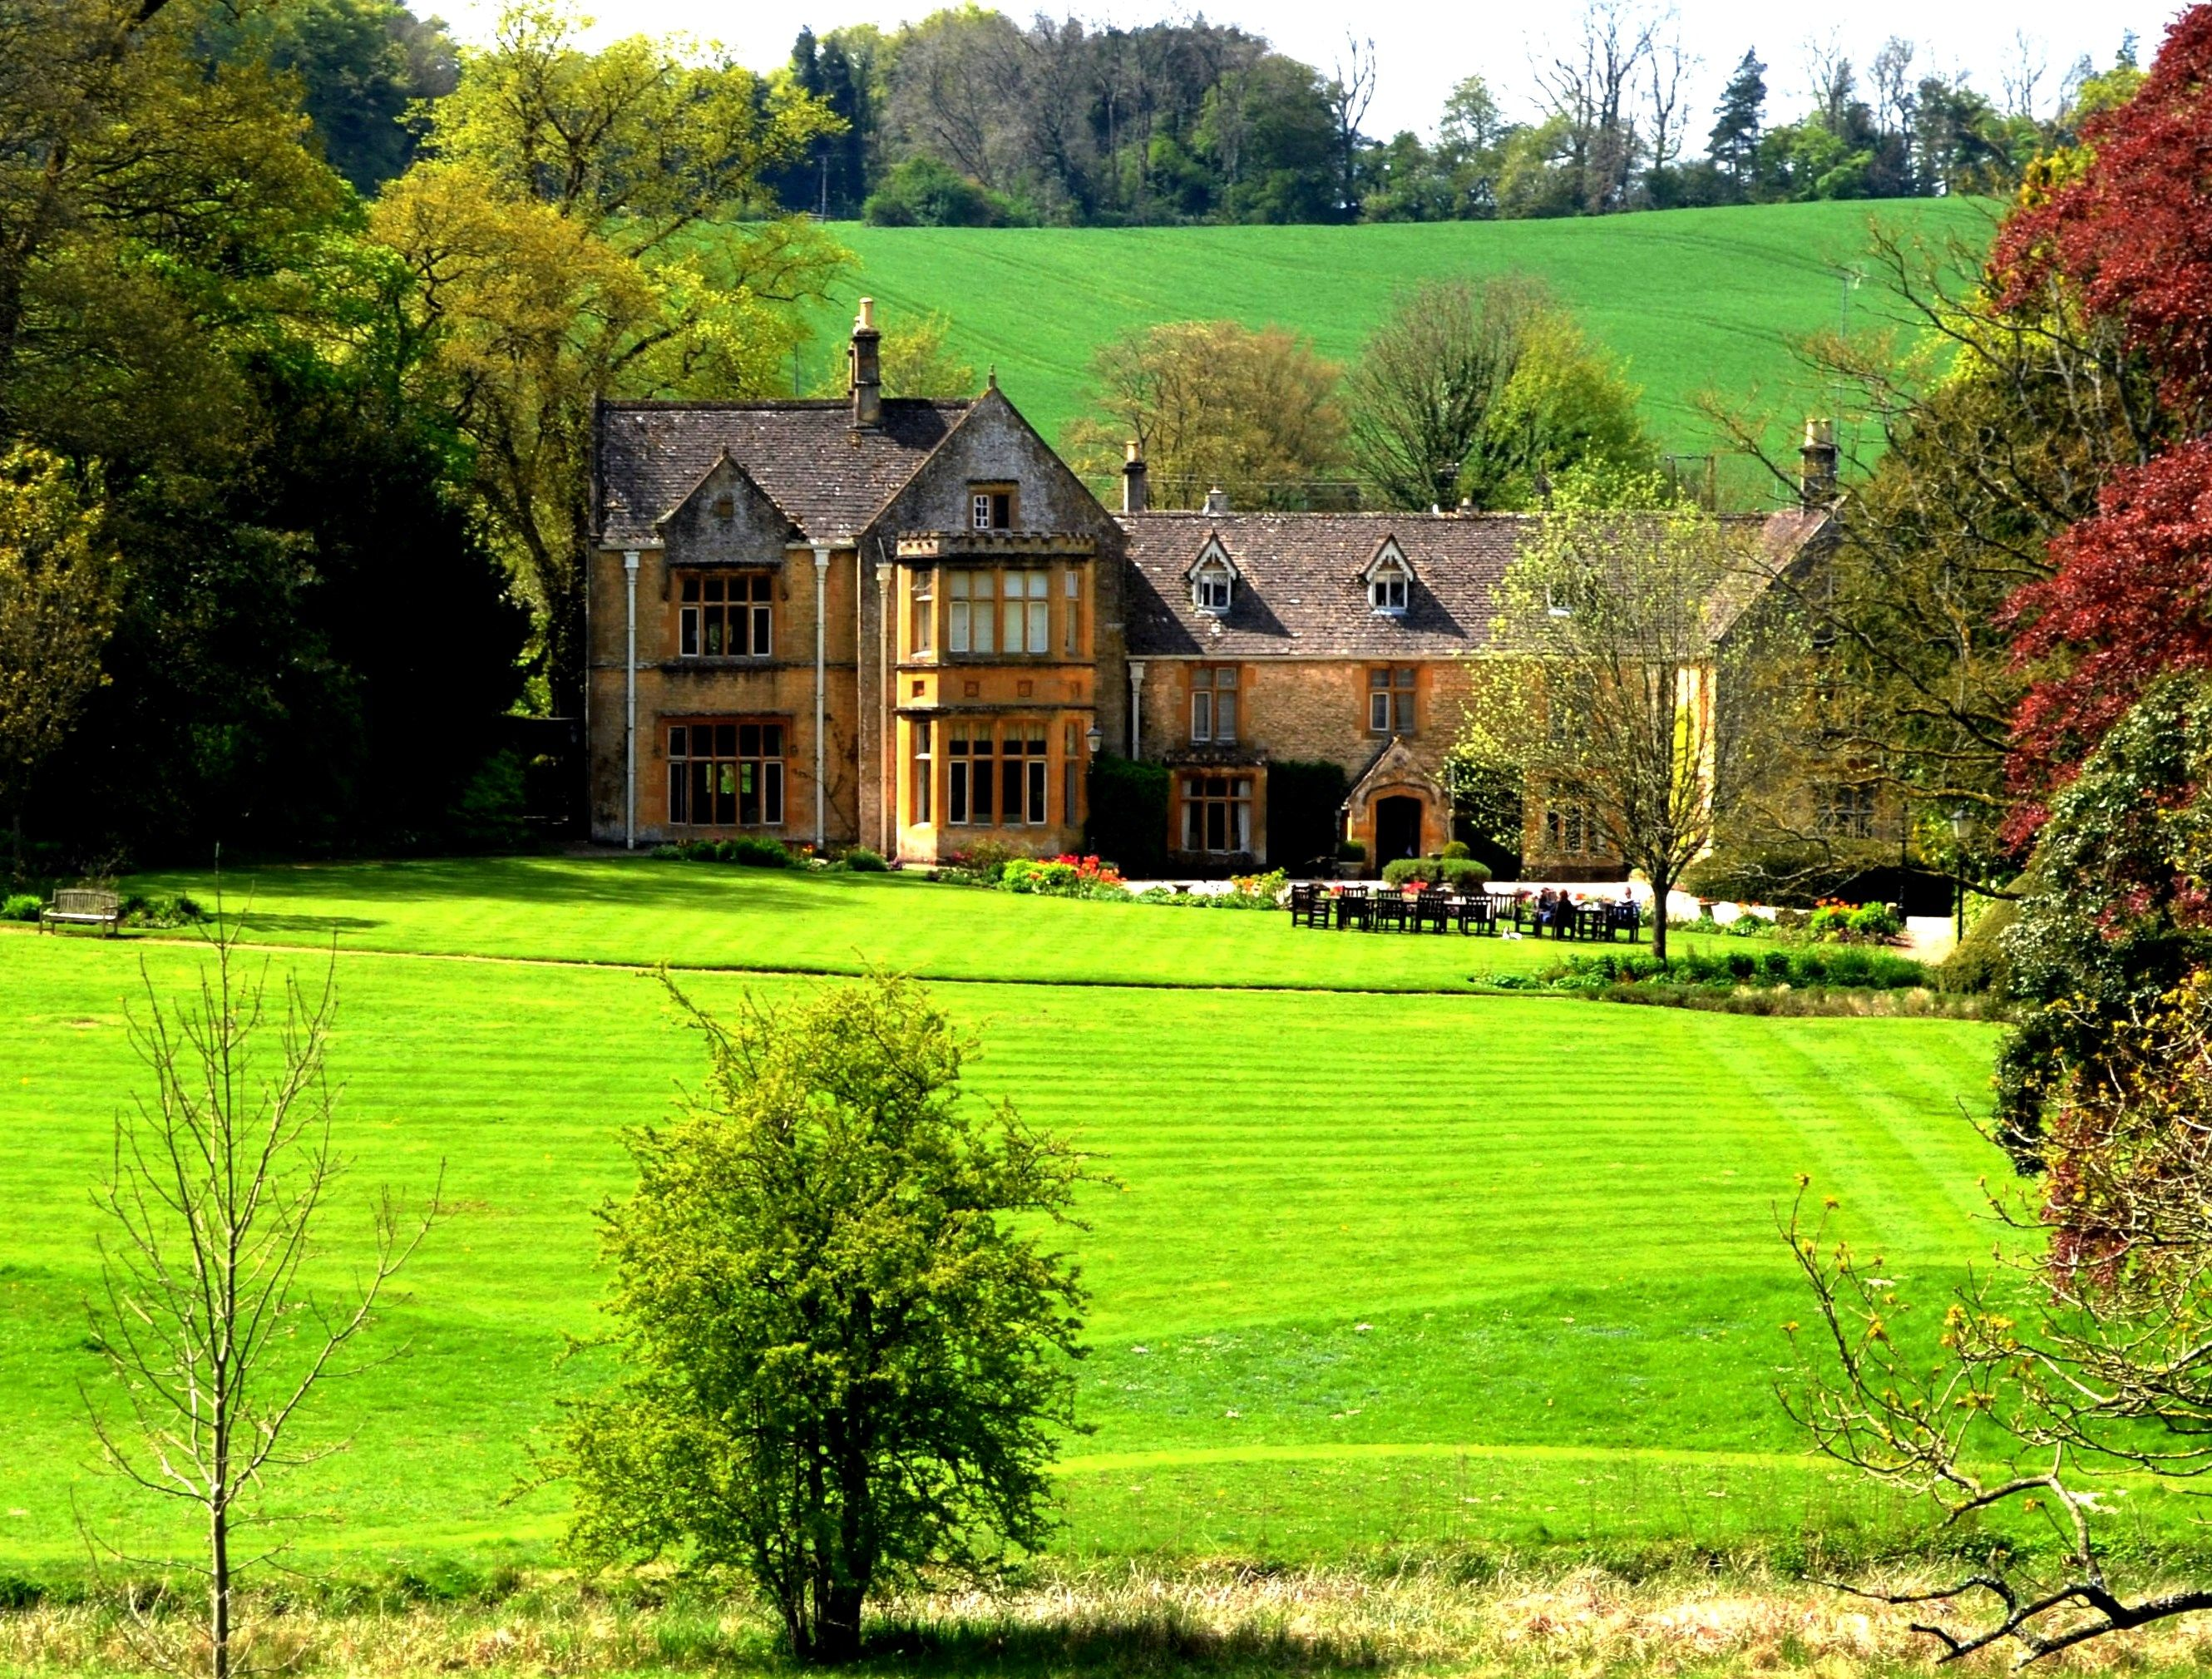 Upper Slaughter Manor, The Slaughters UK